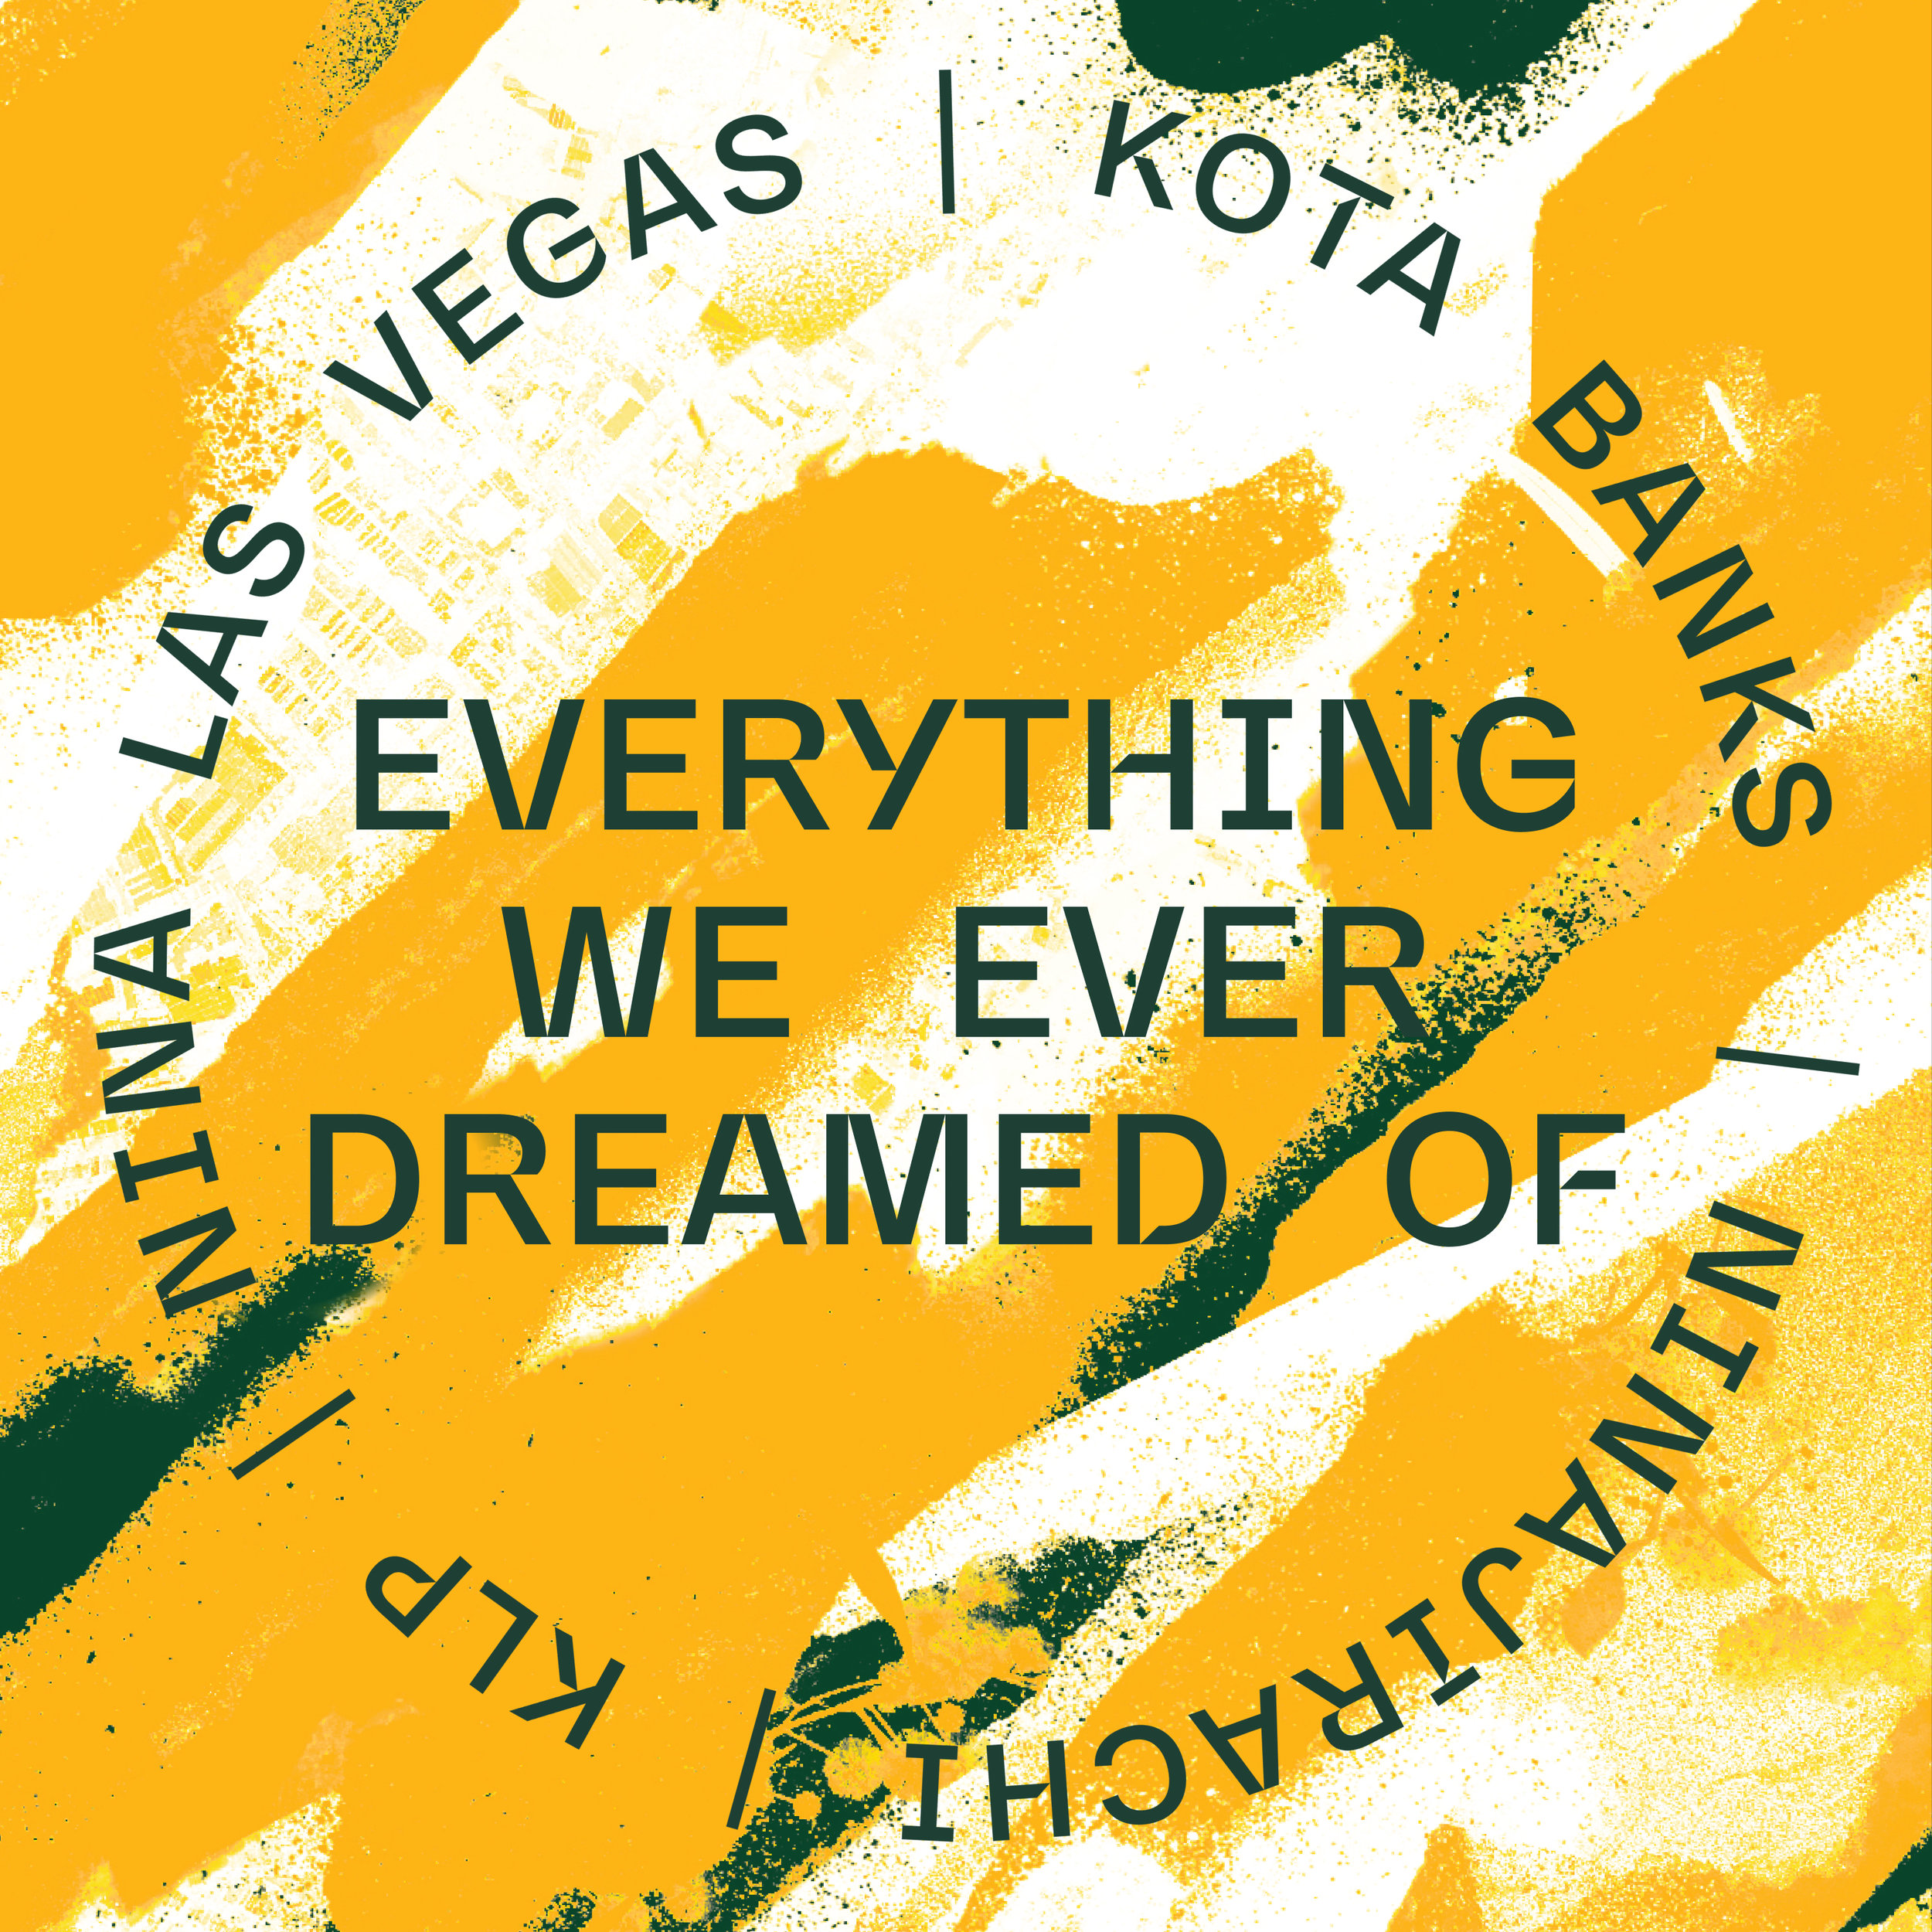 'Everything We Ever Dreamed Of' COVER-ART_3000x3000 FINAL.jpg